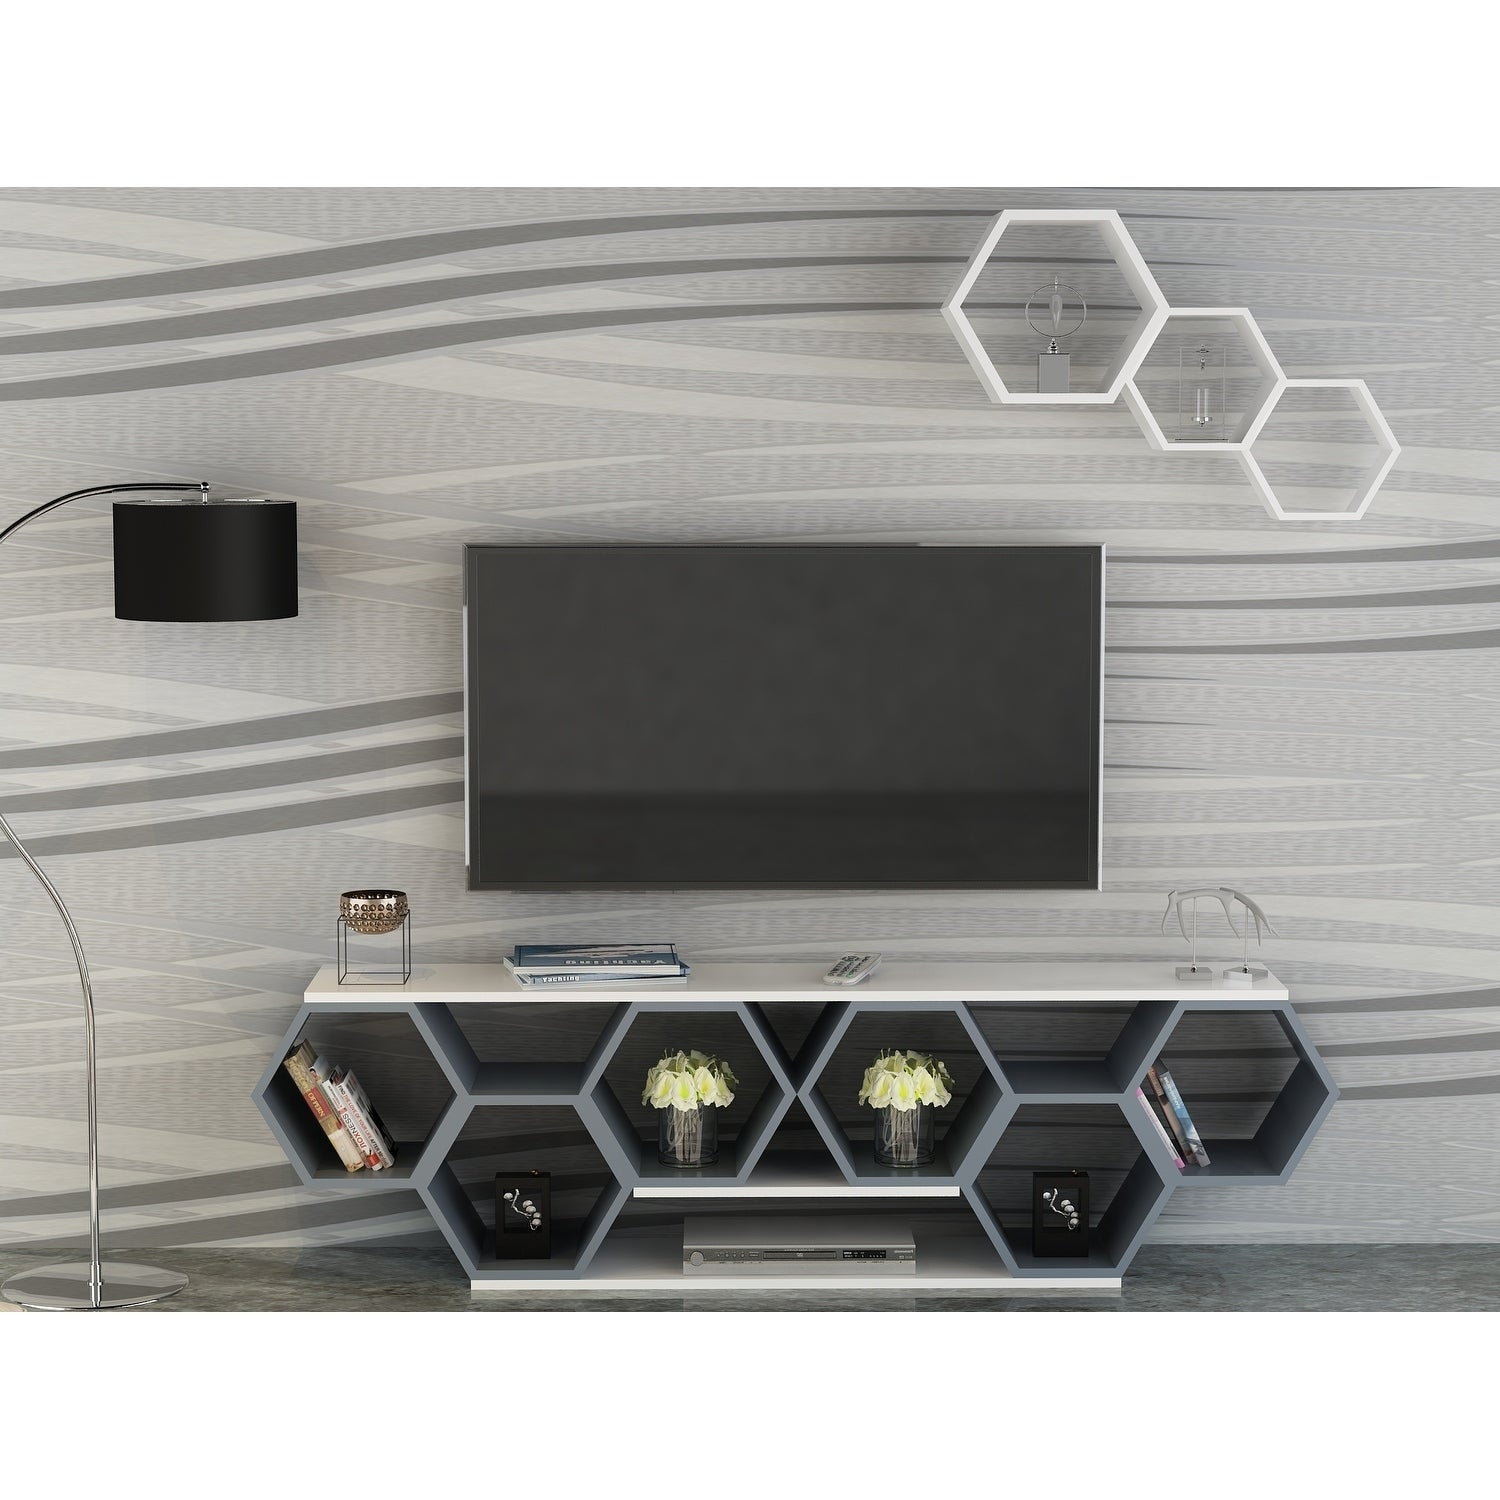 Bumblebee Contemporary Wood Honeycomb-style TV Stand (Anthracite/White)